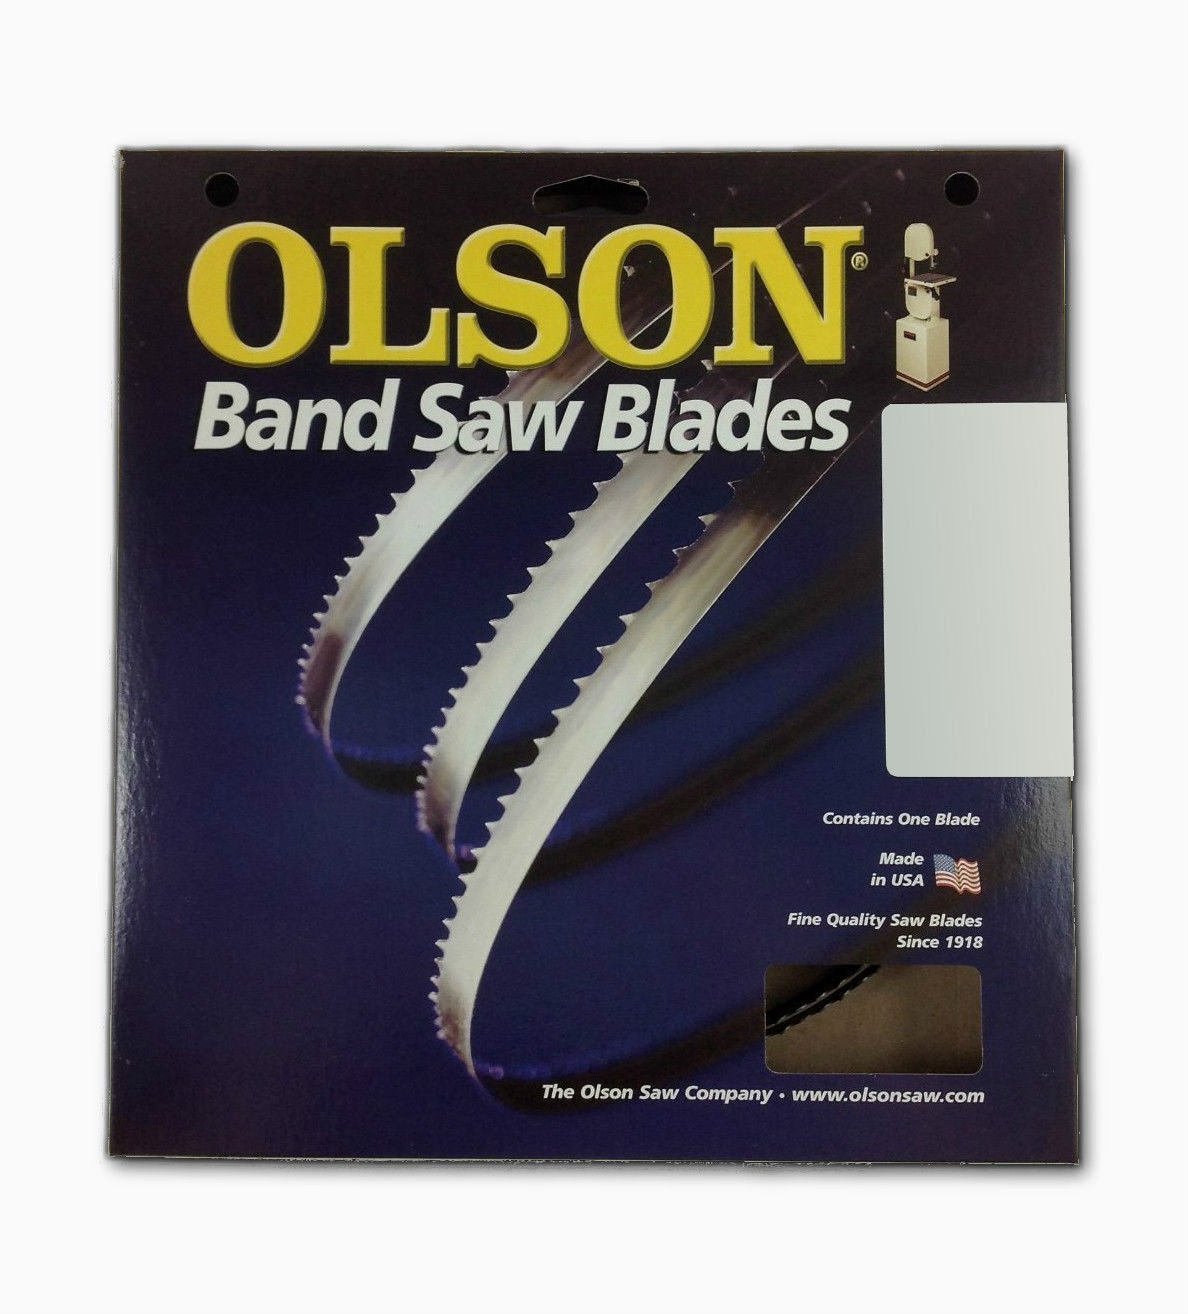 Olson 14593 Band Saw Blade 93-1/2'' Long X 1/4'' Wide .025'' Thick 6 Tpi